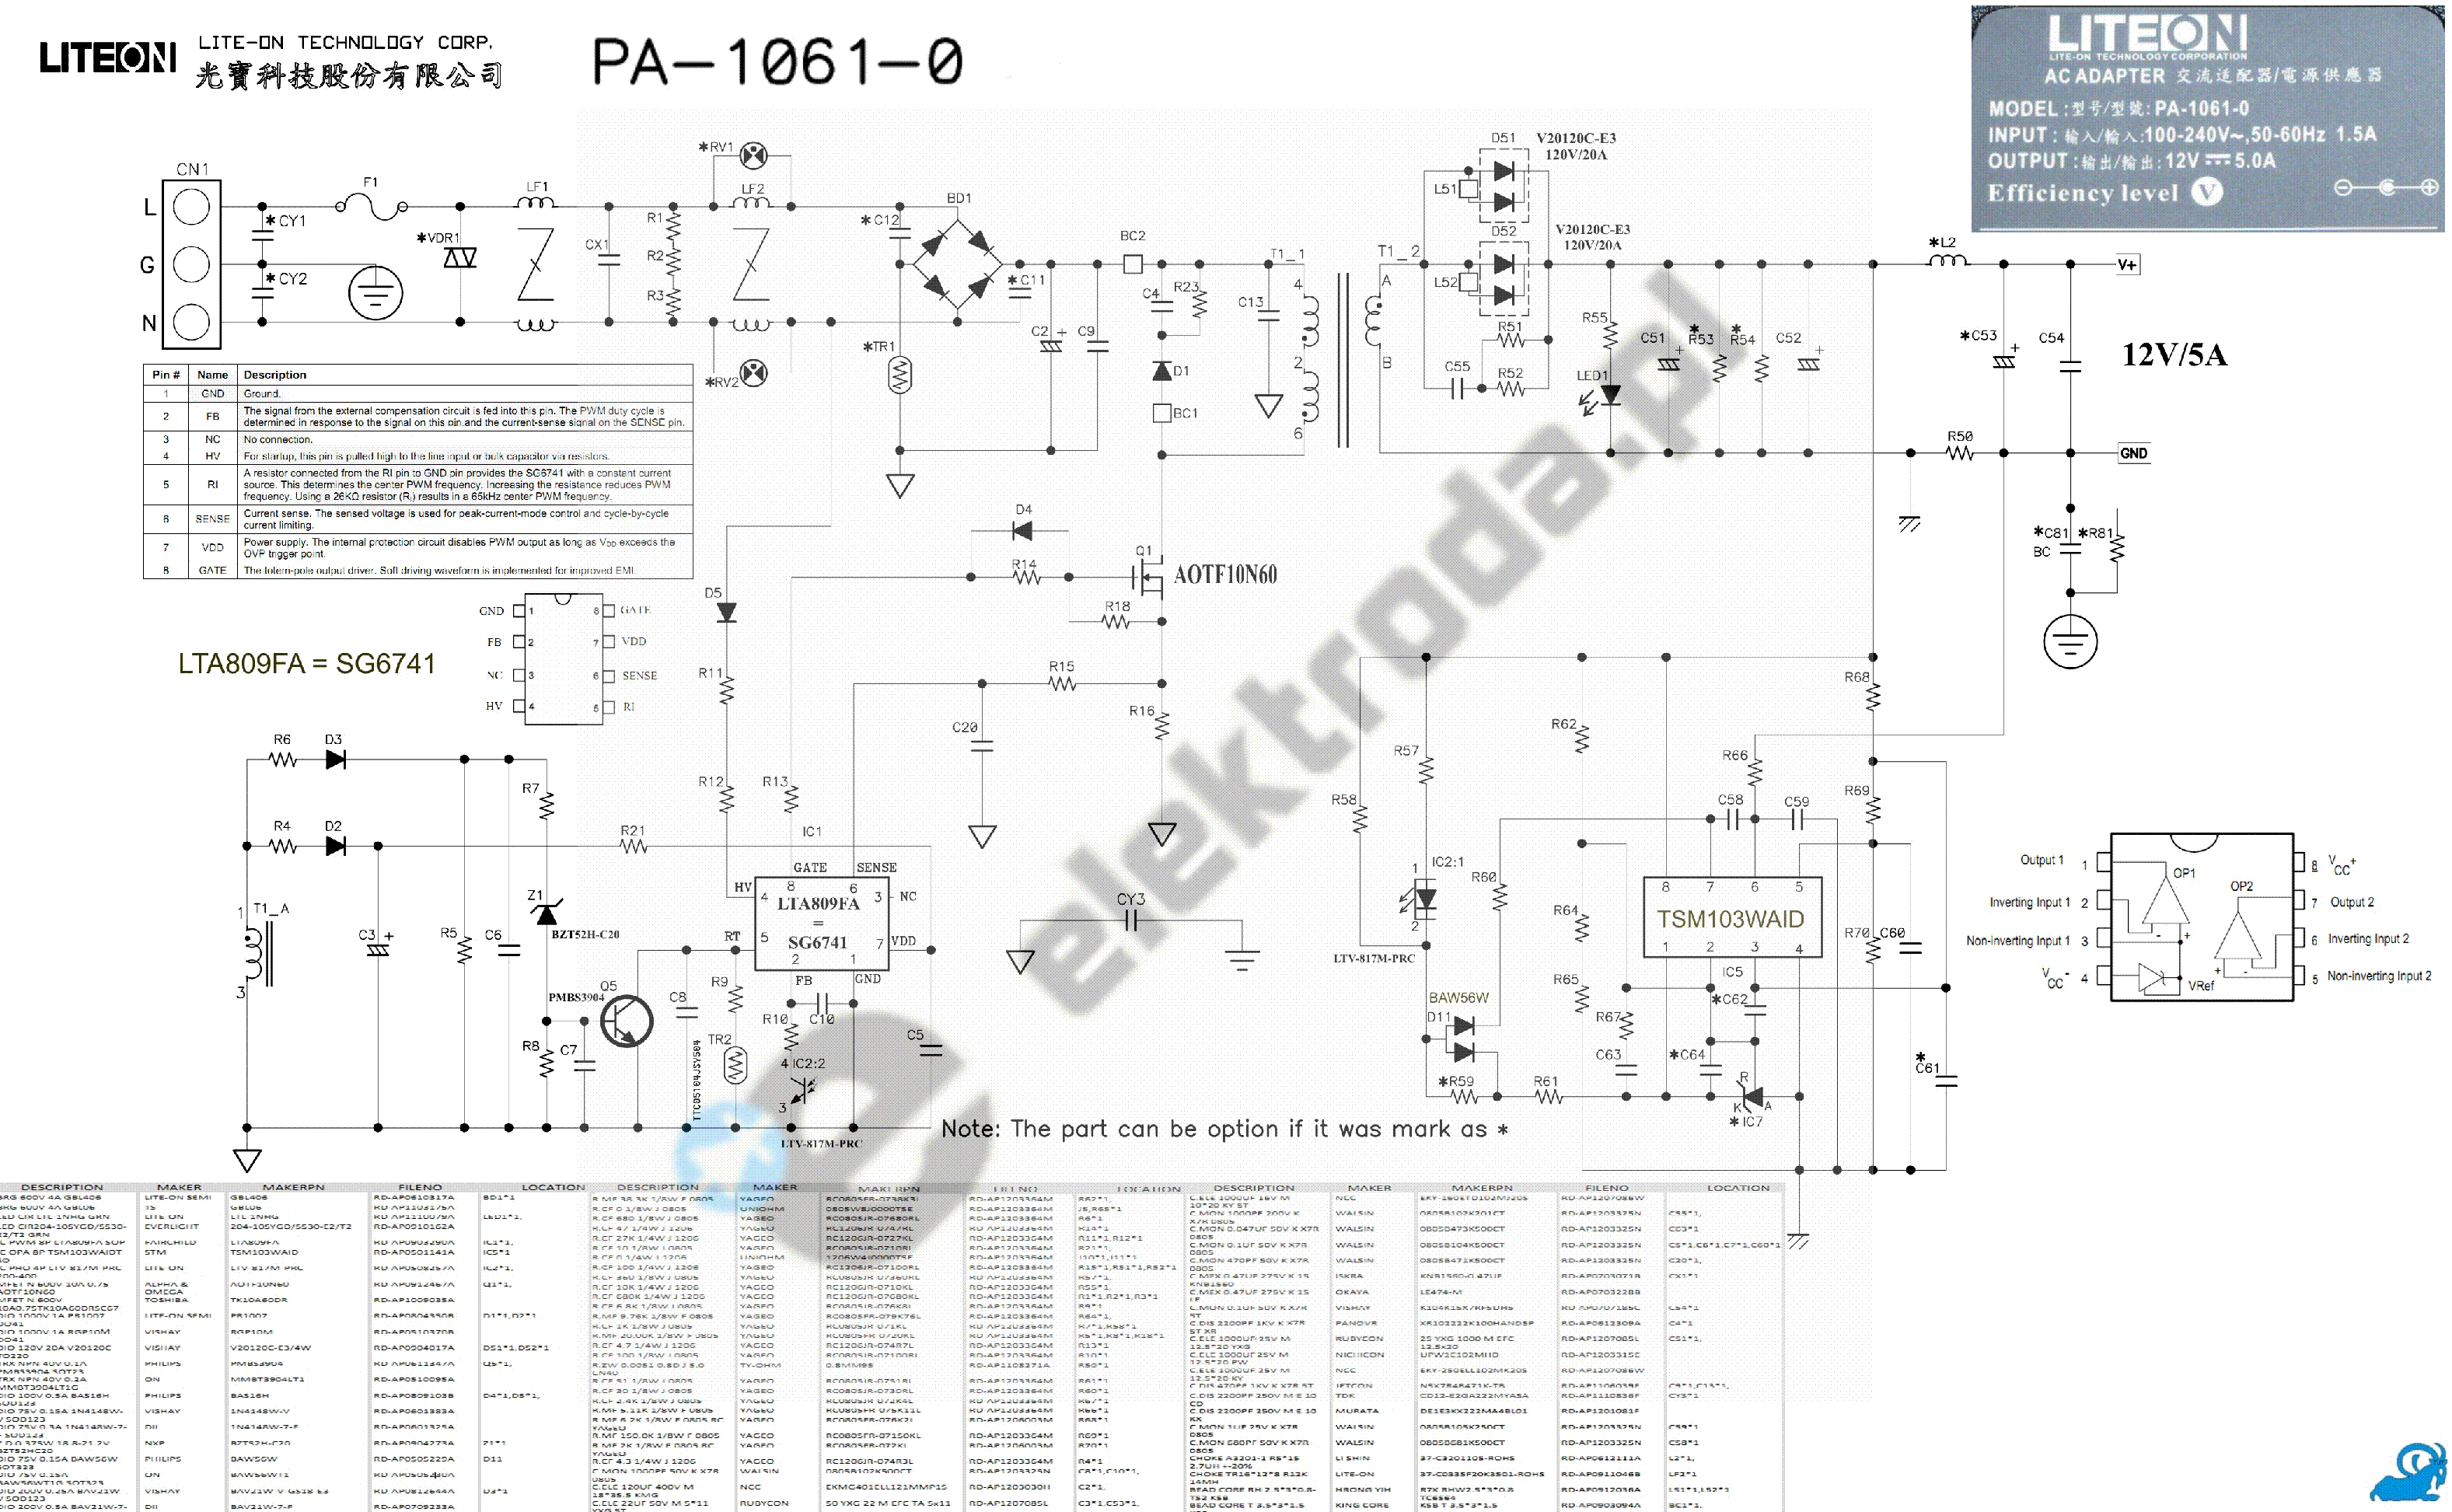 LITEON PA-1121 04 OUT POWER SCHEMATIC Service Manual